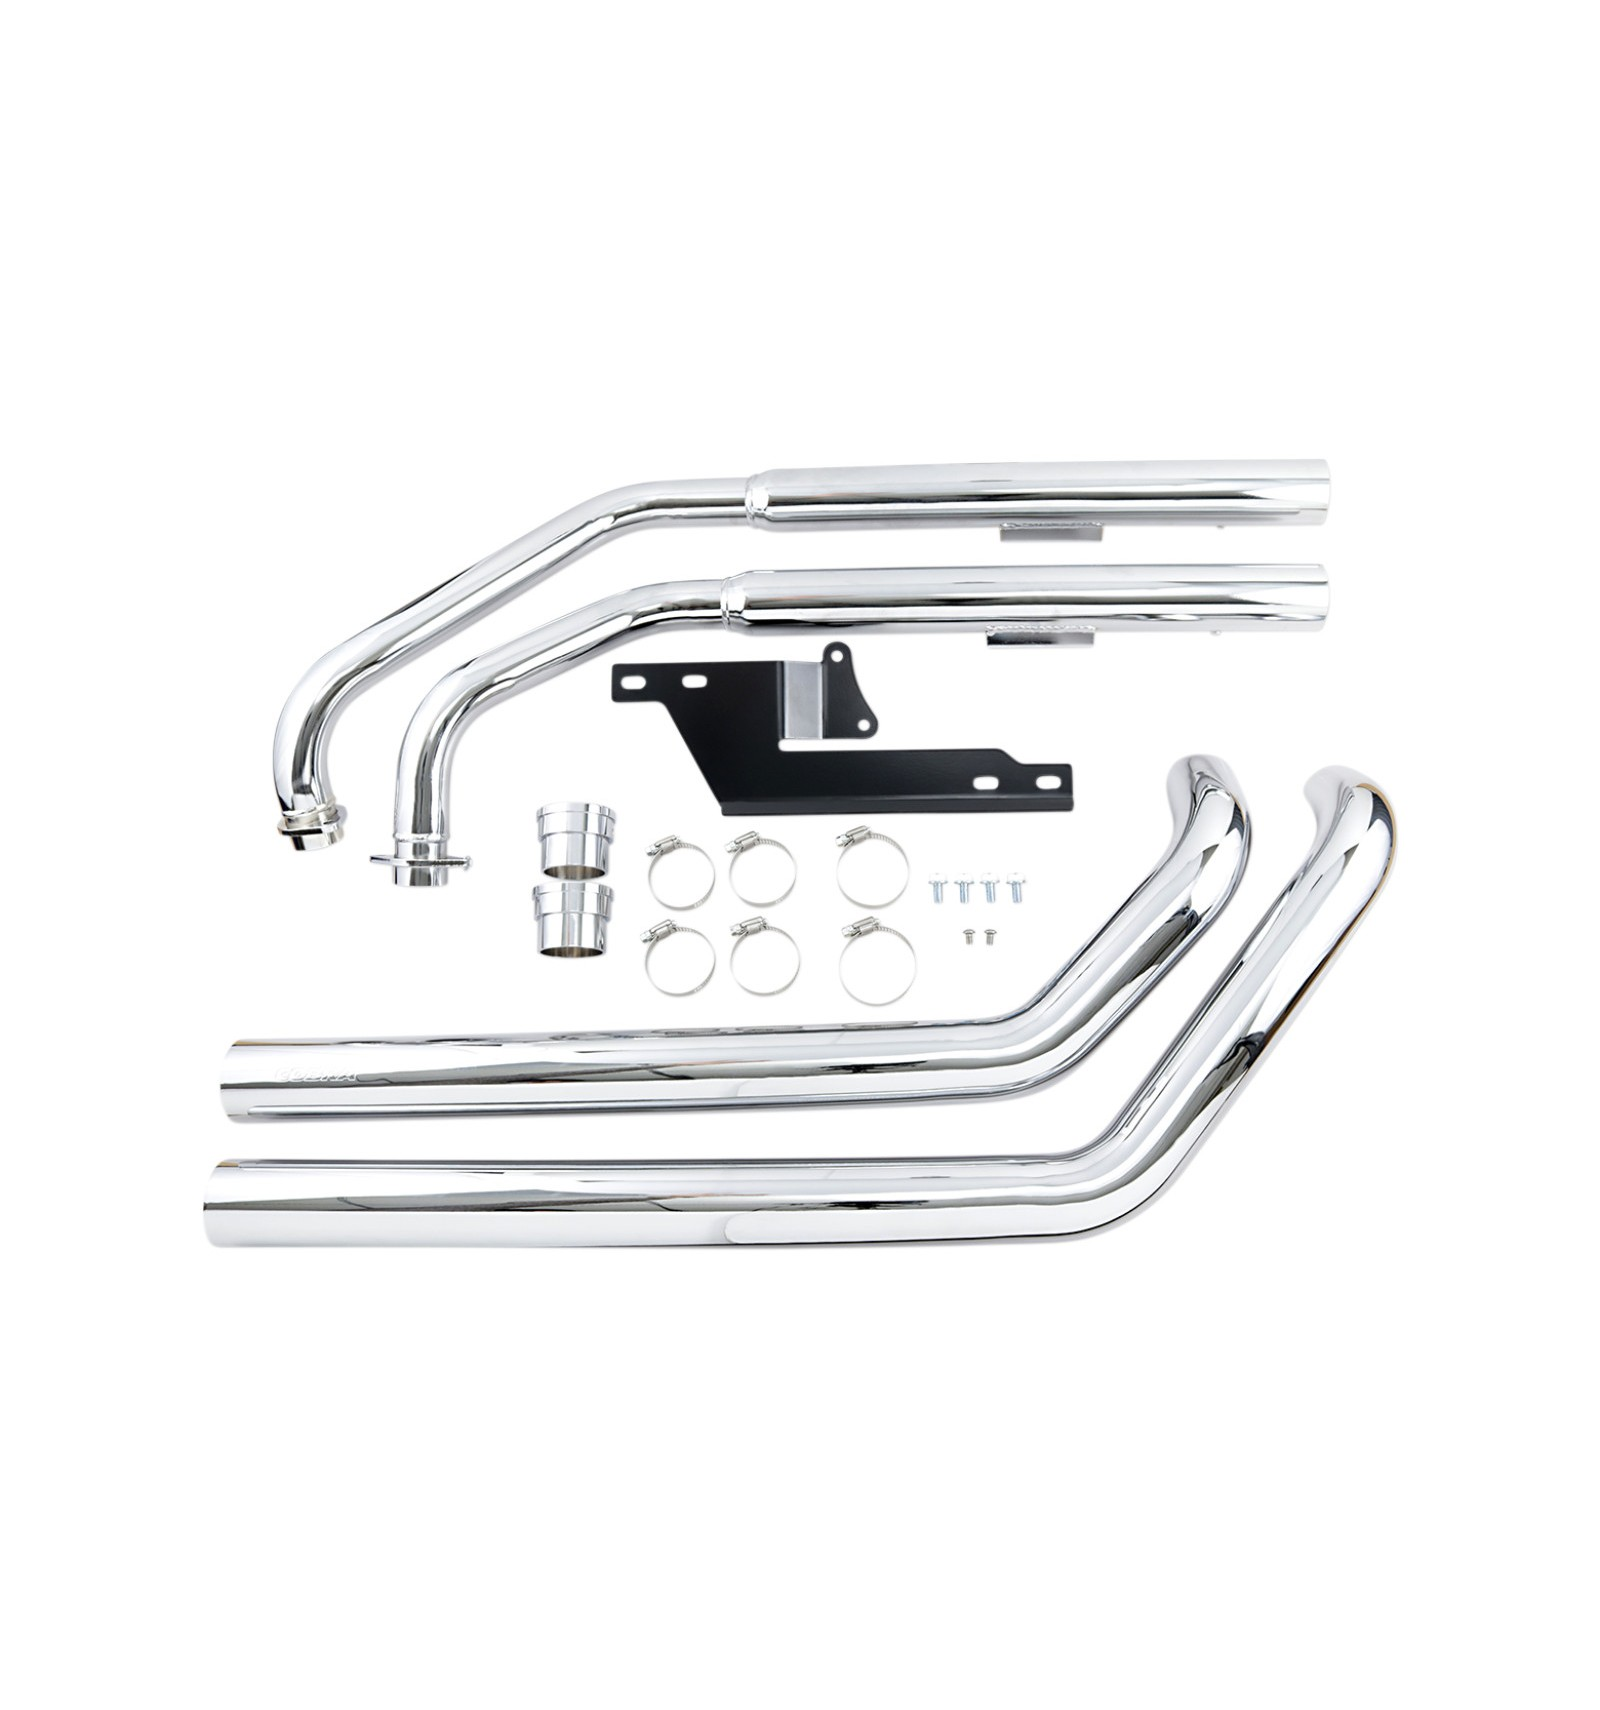 kawasaki vn900 cobra exhaust system dragster 2 into 2 straight cut chrome